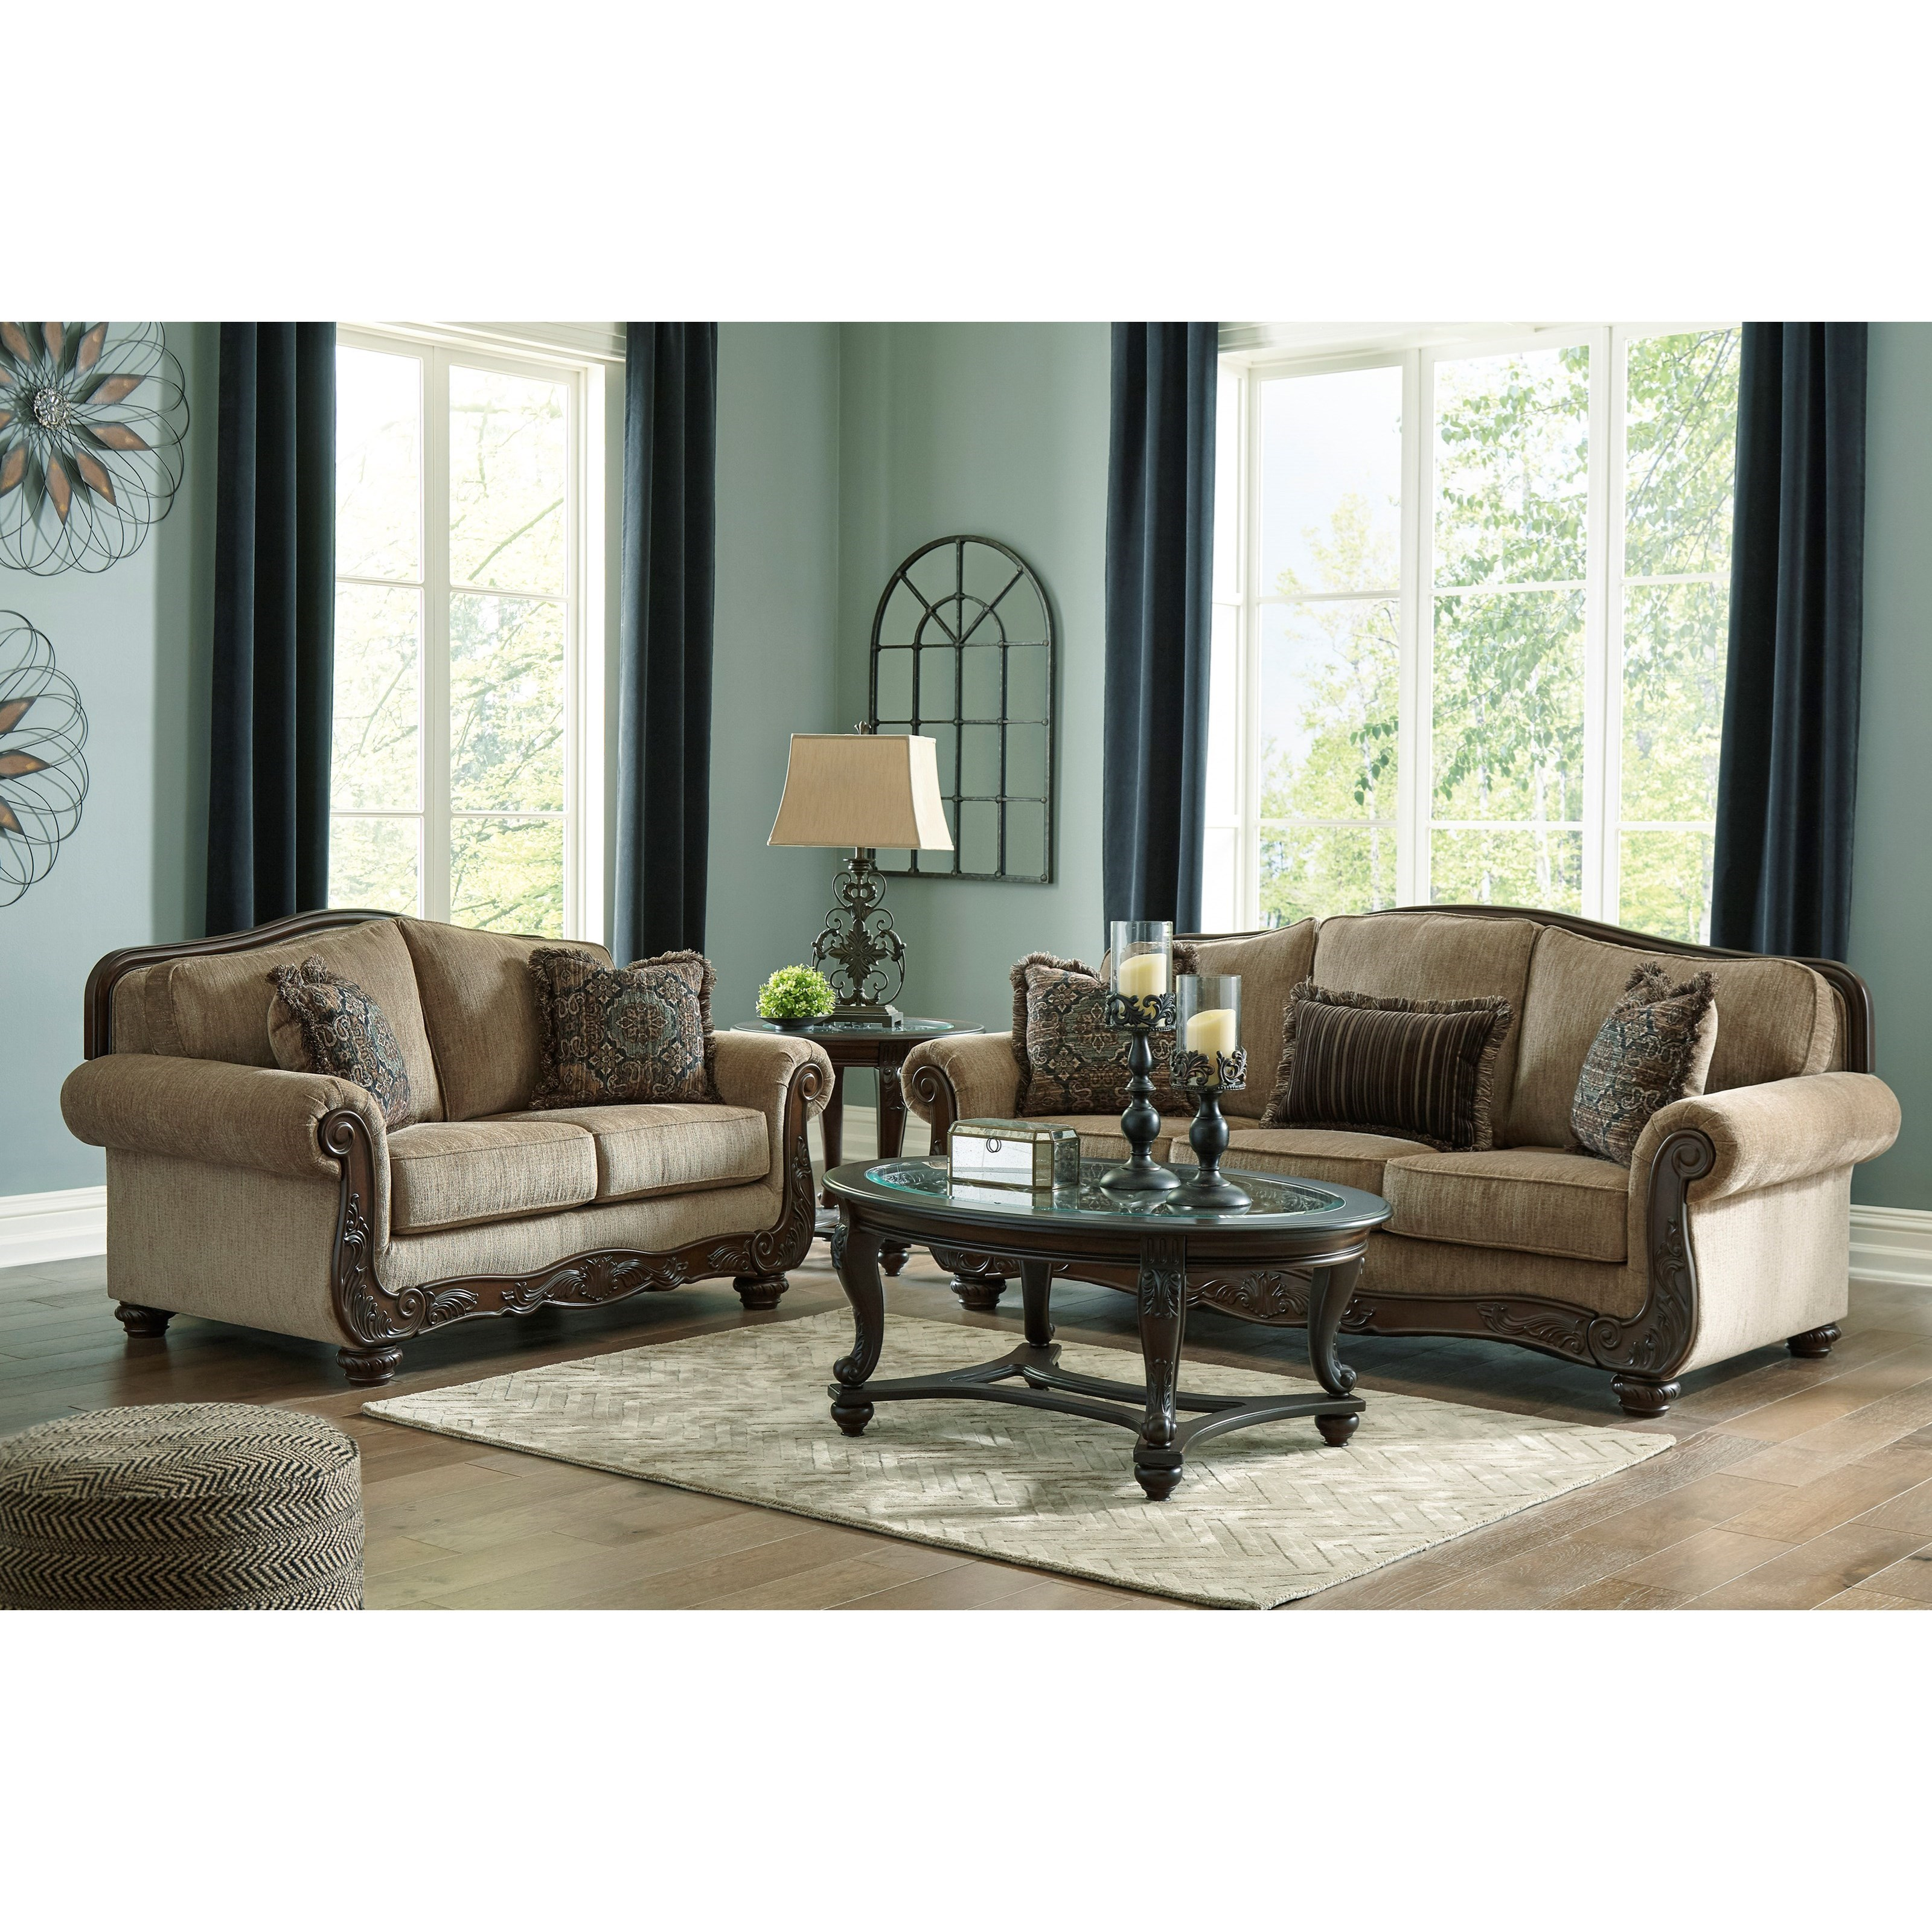 Briaroaks Living Room Group by Benchcraft at Miller Waldrop Furniture and Decor